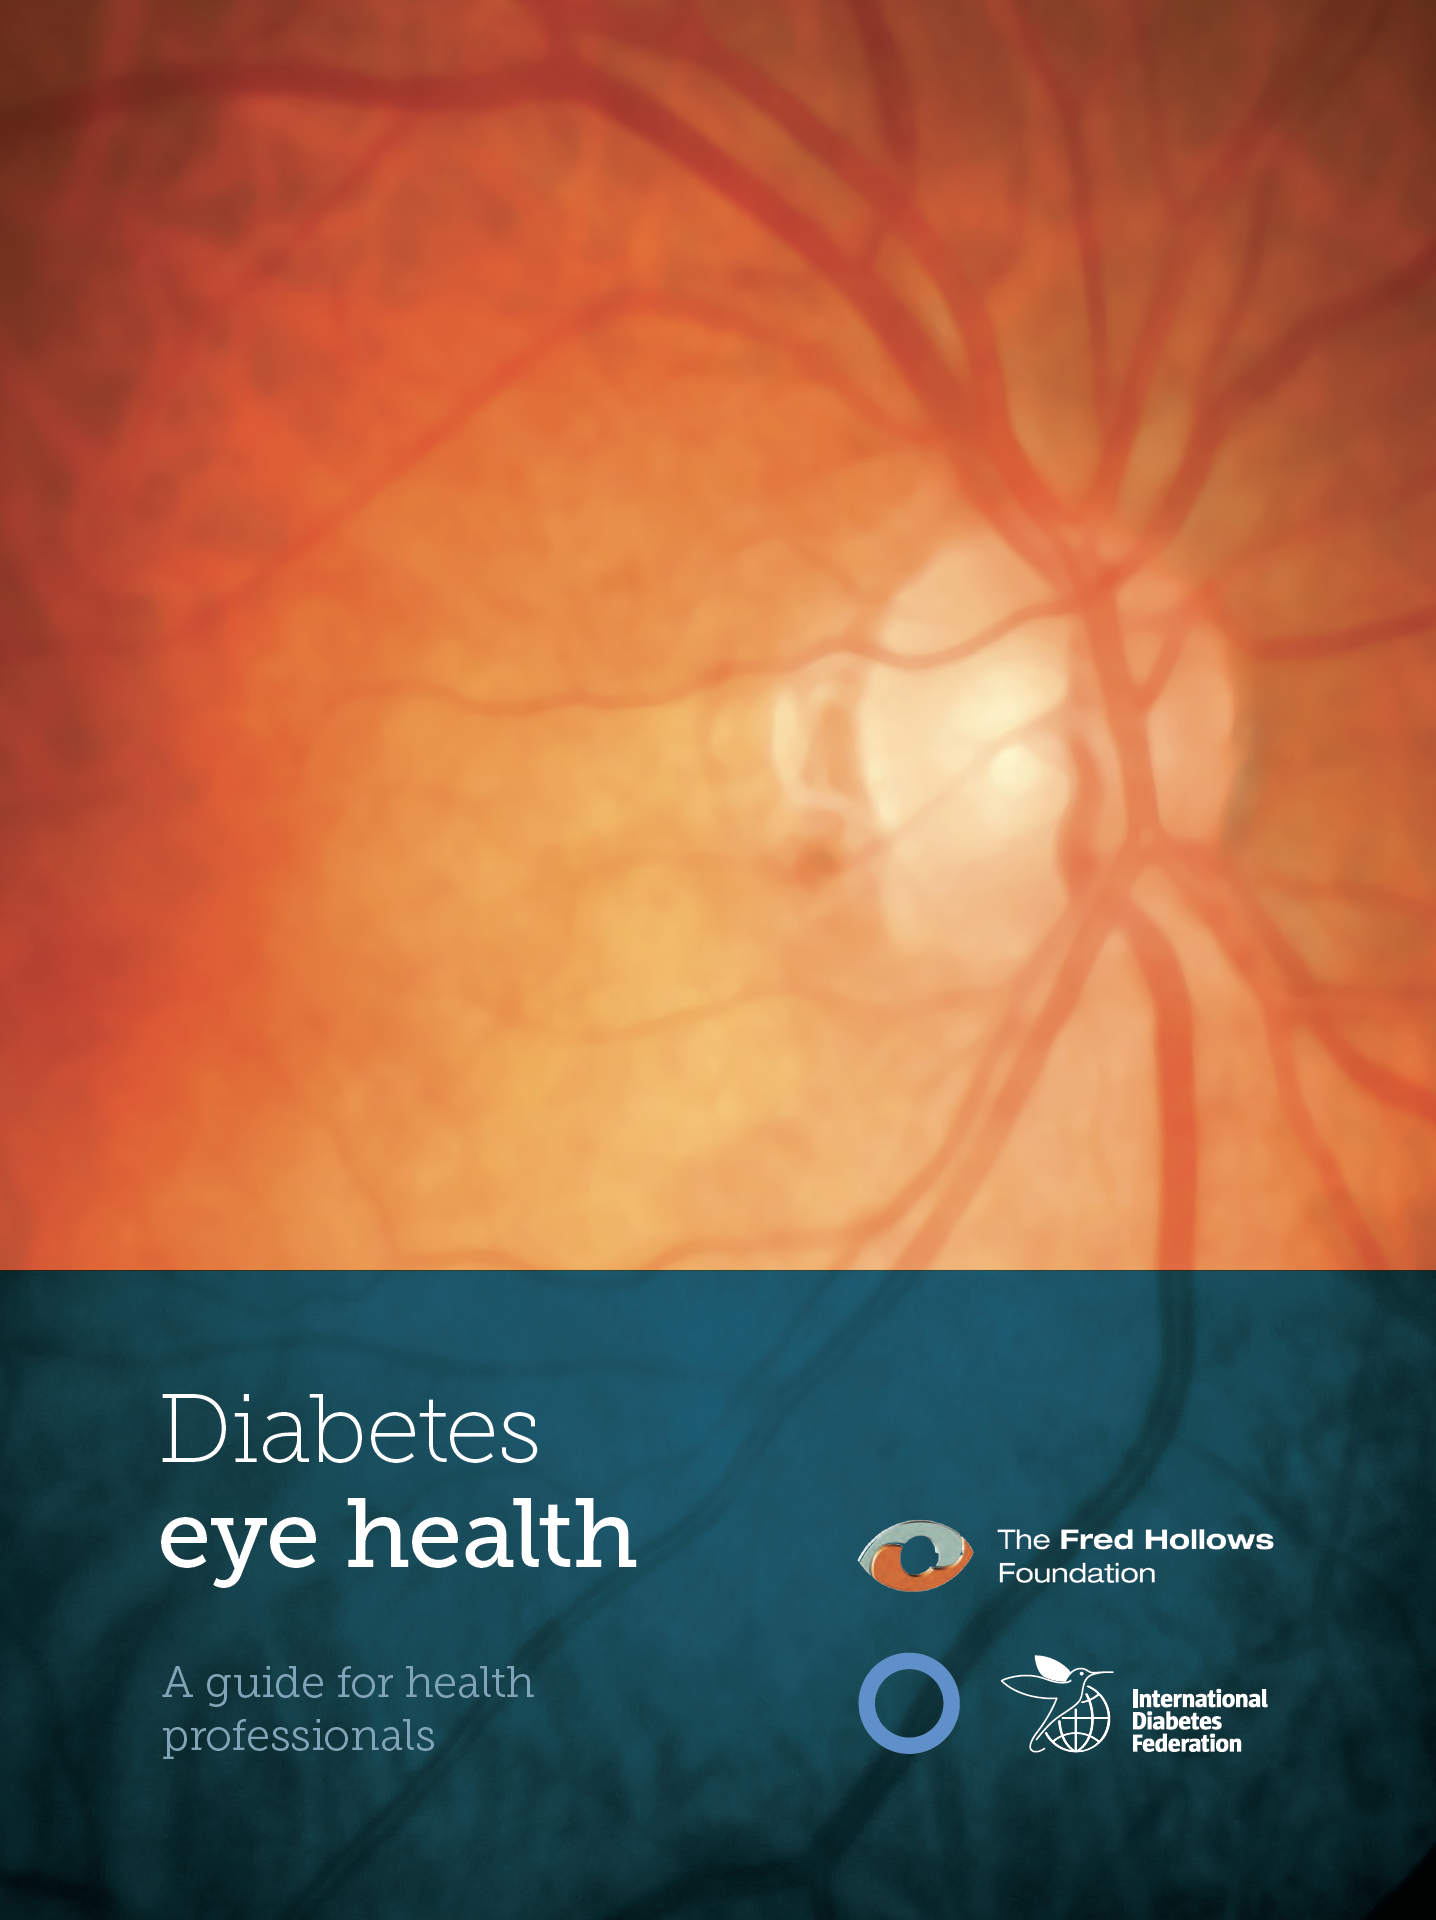 Diabetes-eye-health-report-image